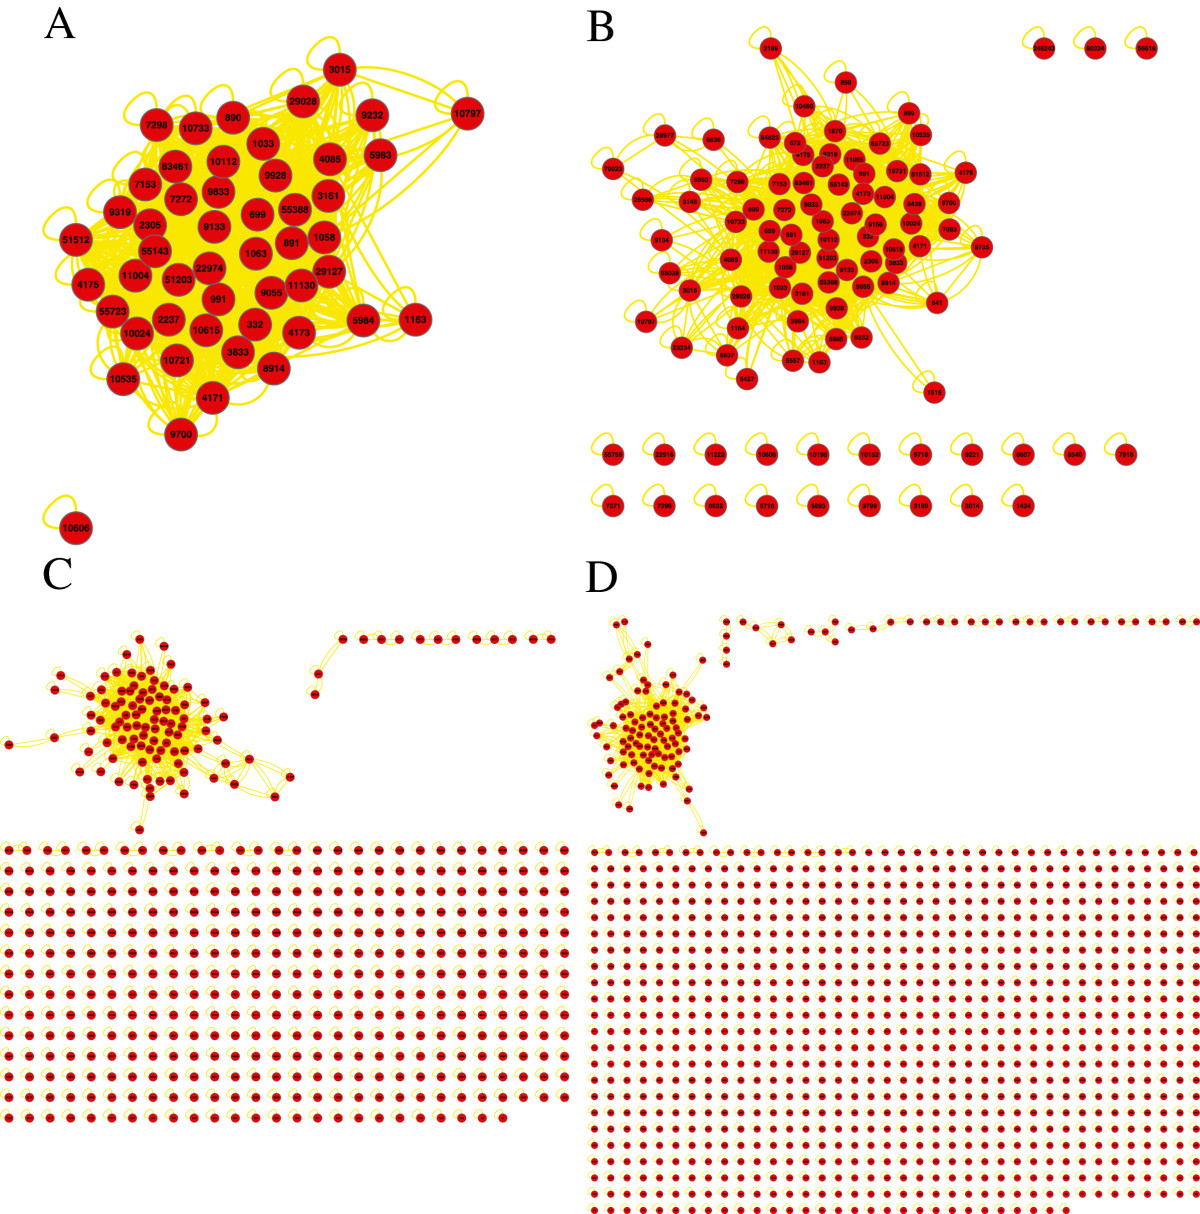 https://static-content.springer.com/image/art%3A10.1186%2F1471-2105-14-365/MediaObjects/12859_2013_Article_6228_Fig8_HTML.jpg